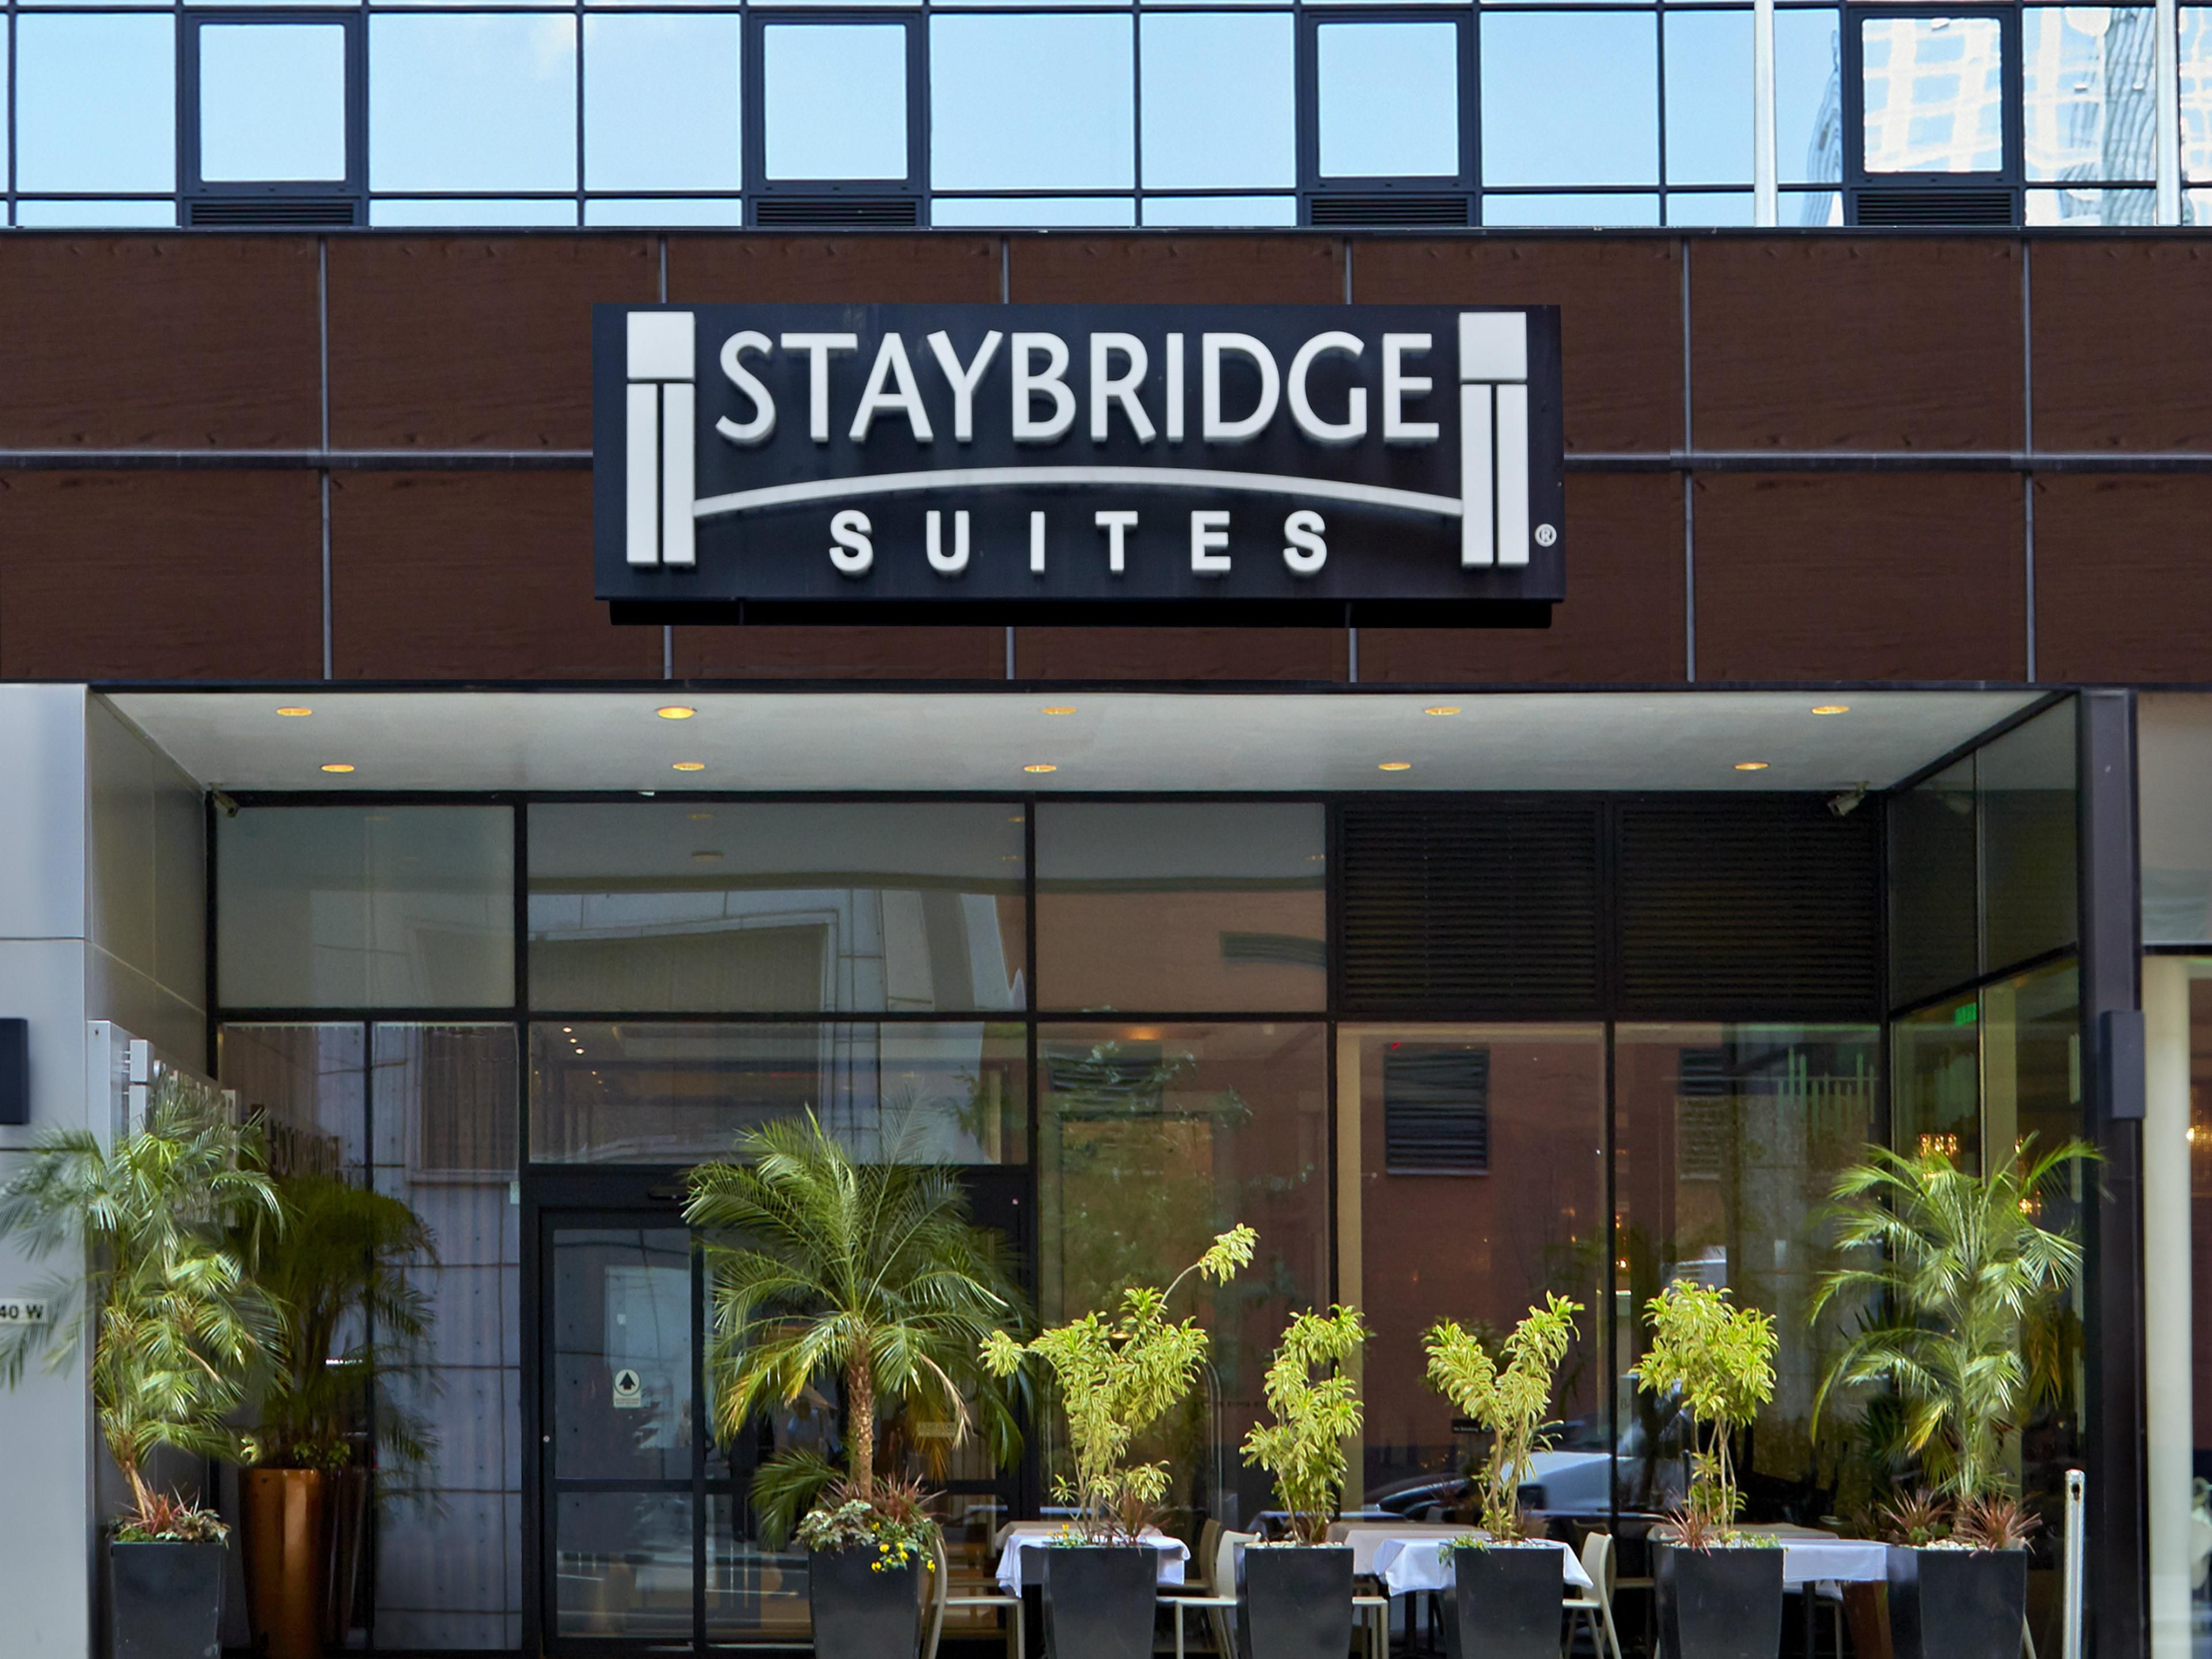 Hotel Suites In Nyc Staybridge Suites Times Square New York City